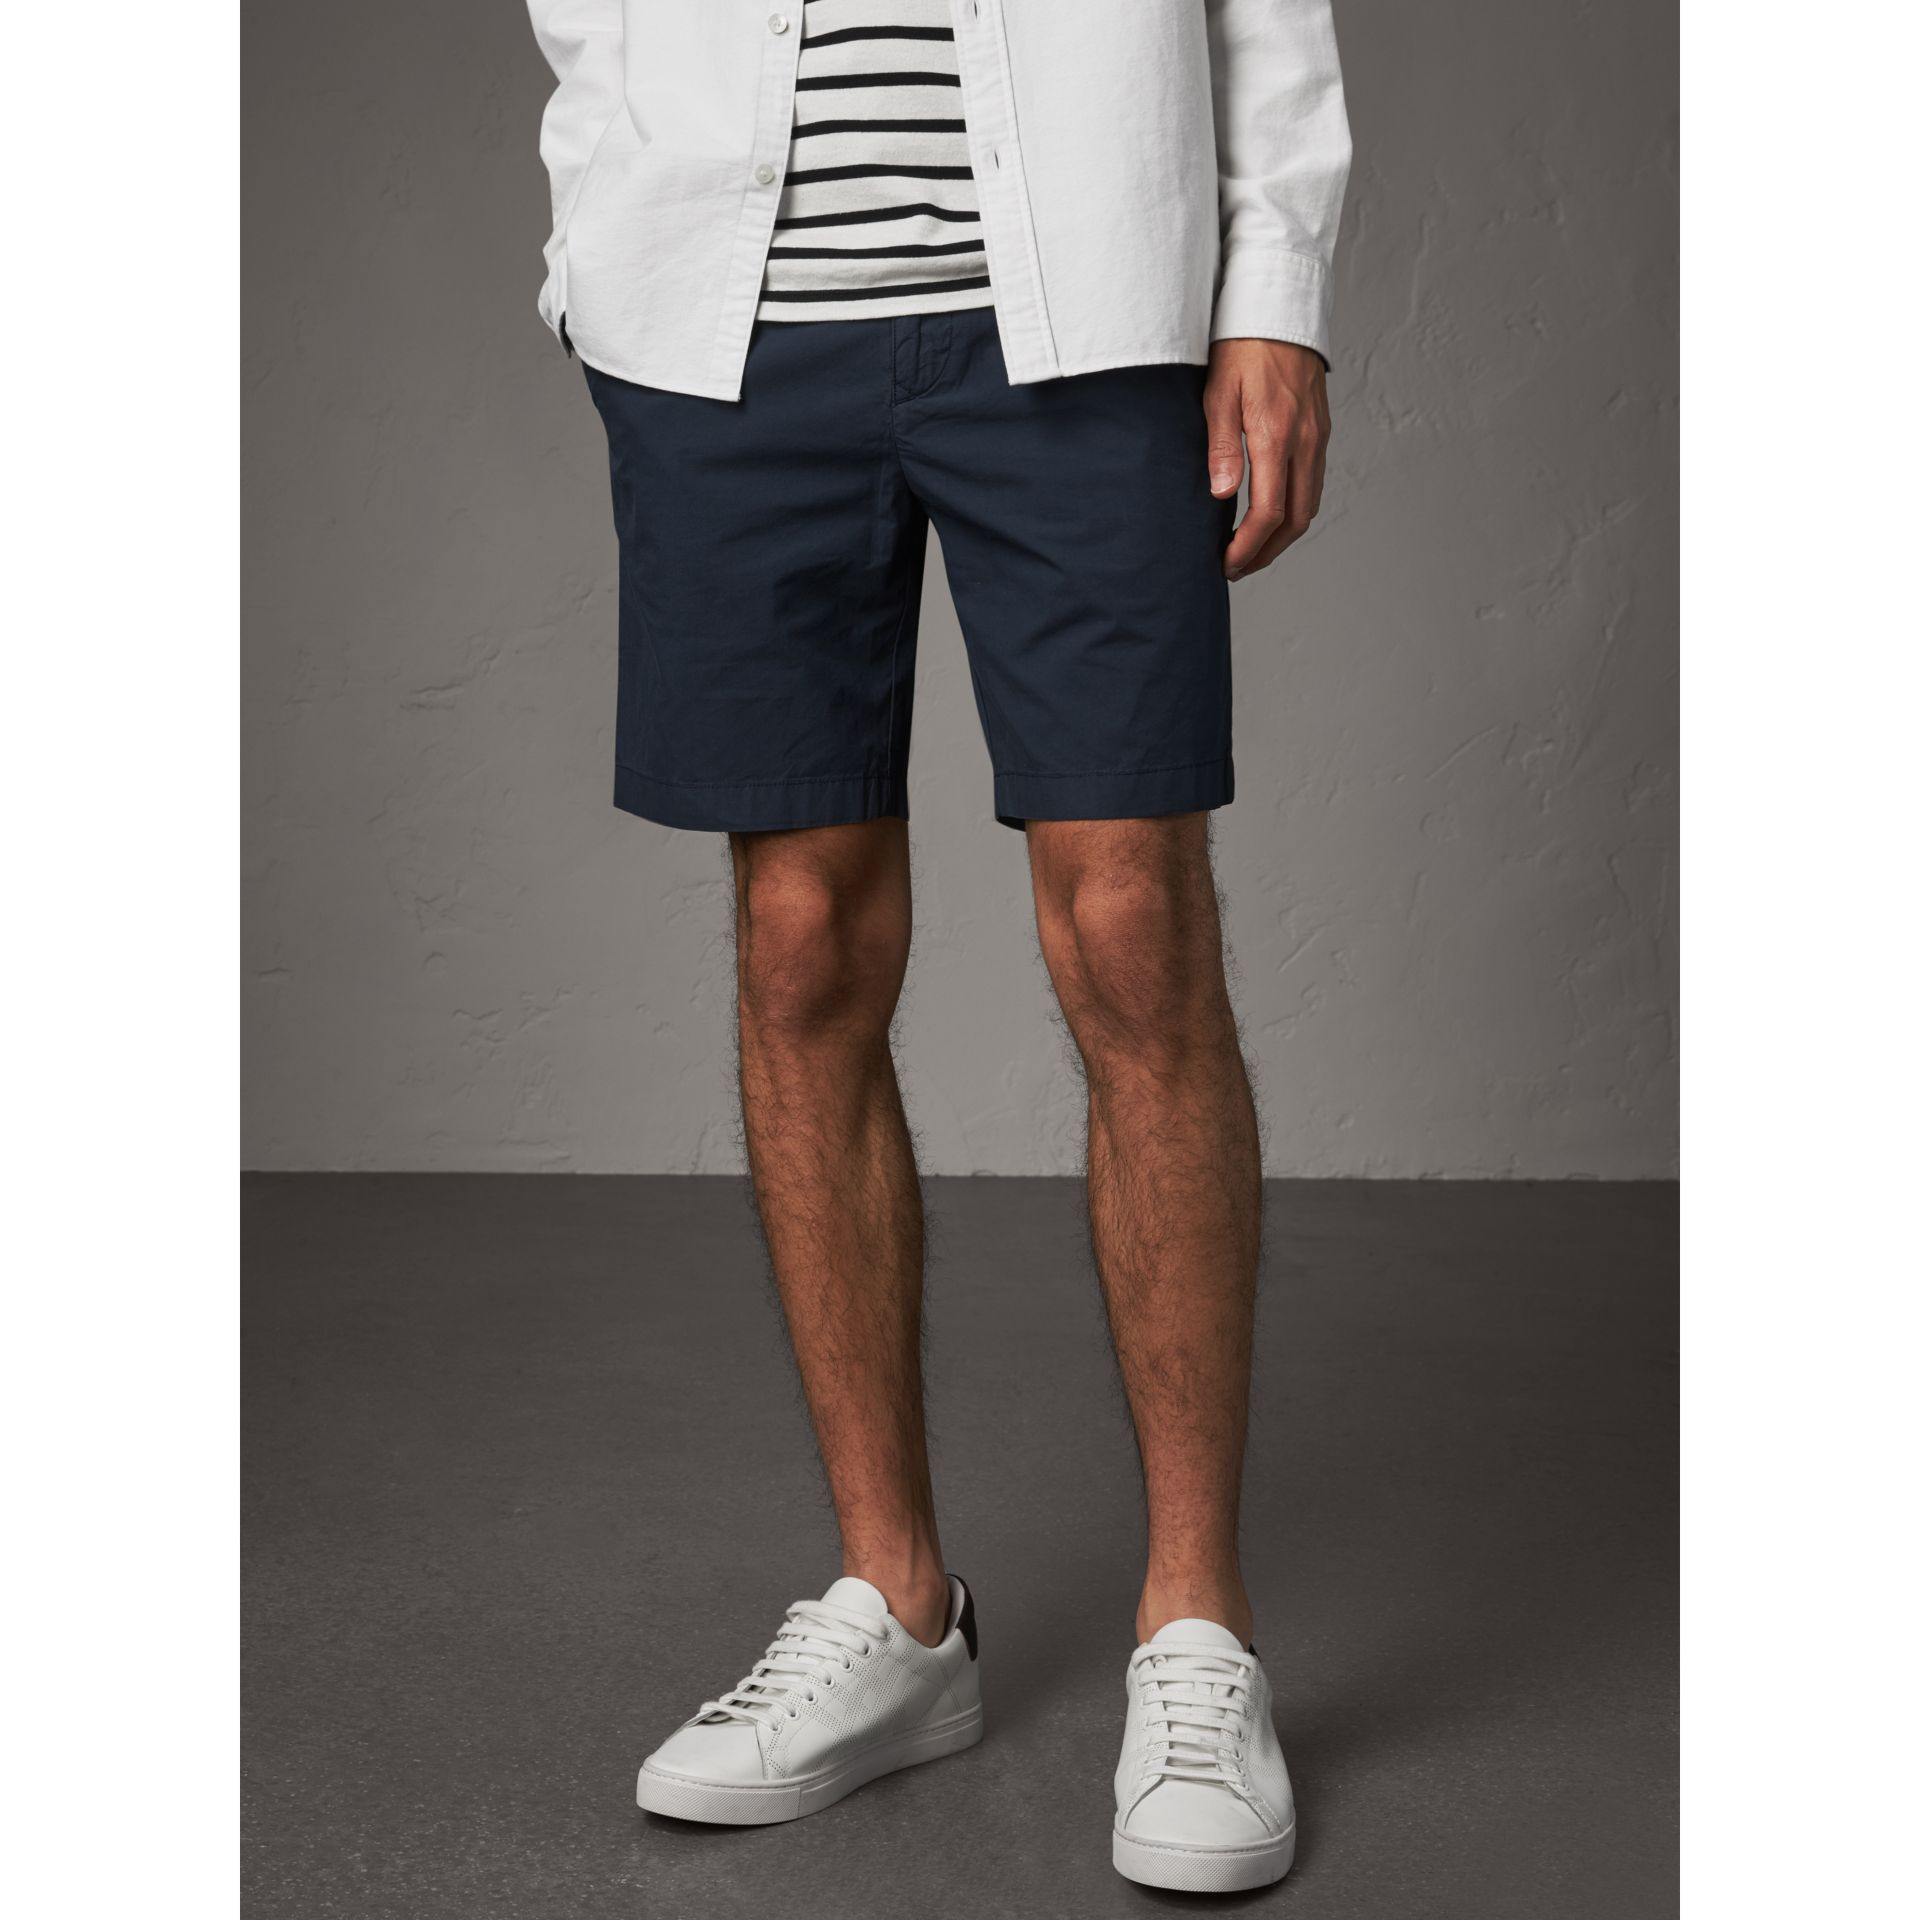 Cotton Poplin Chino Shorts in Indigo - Men | Burberry Australia - gallery image 4